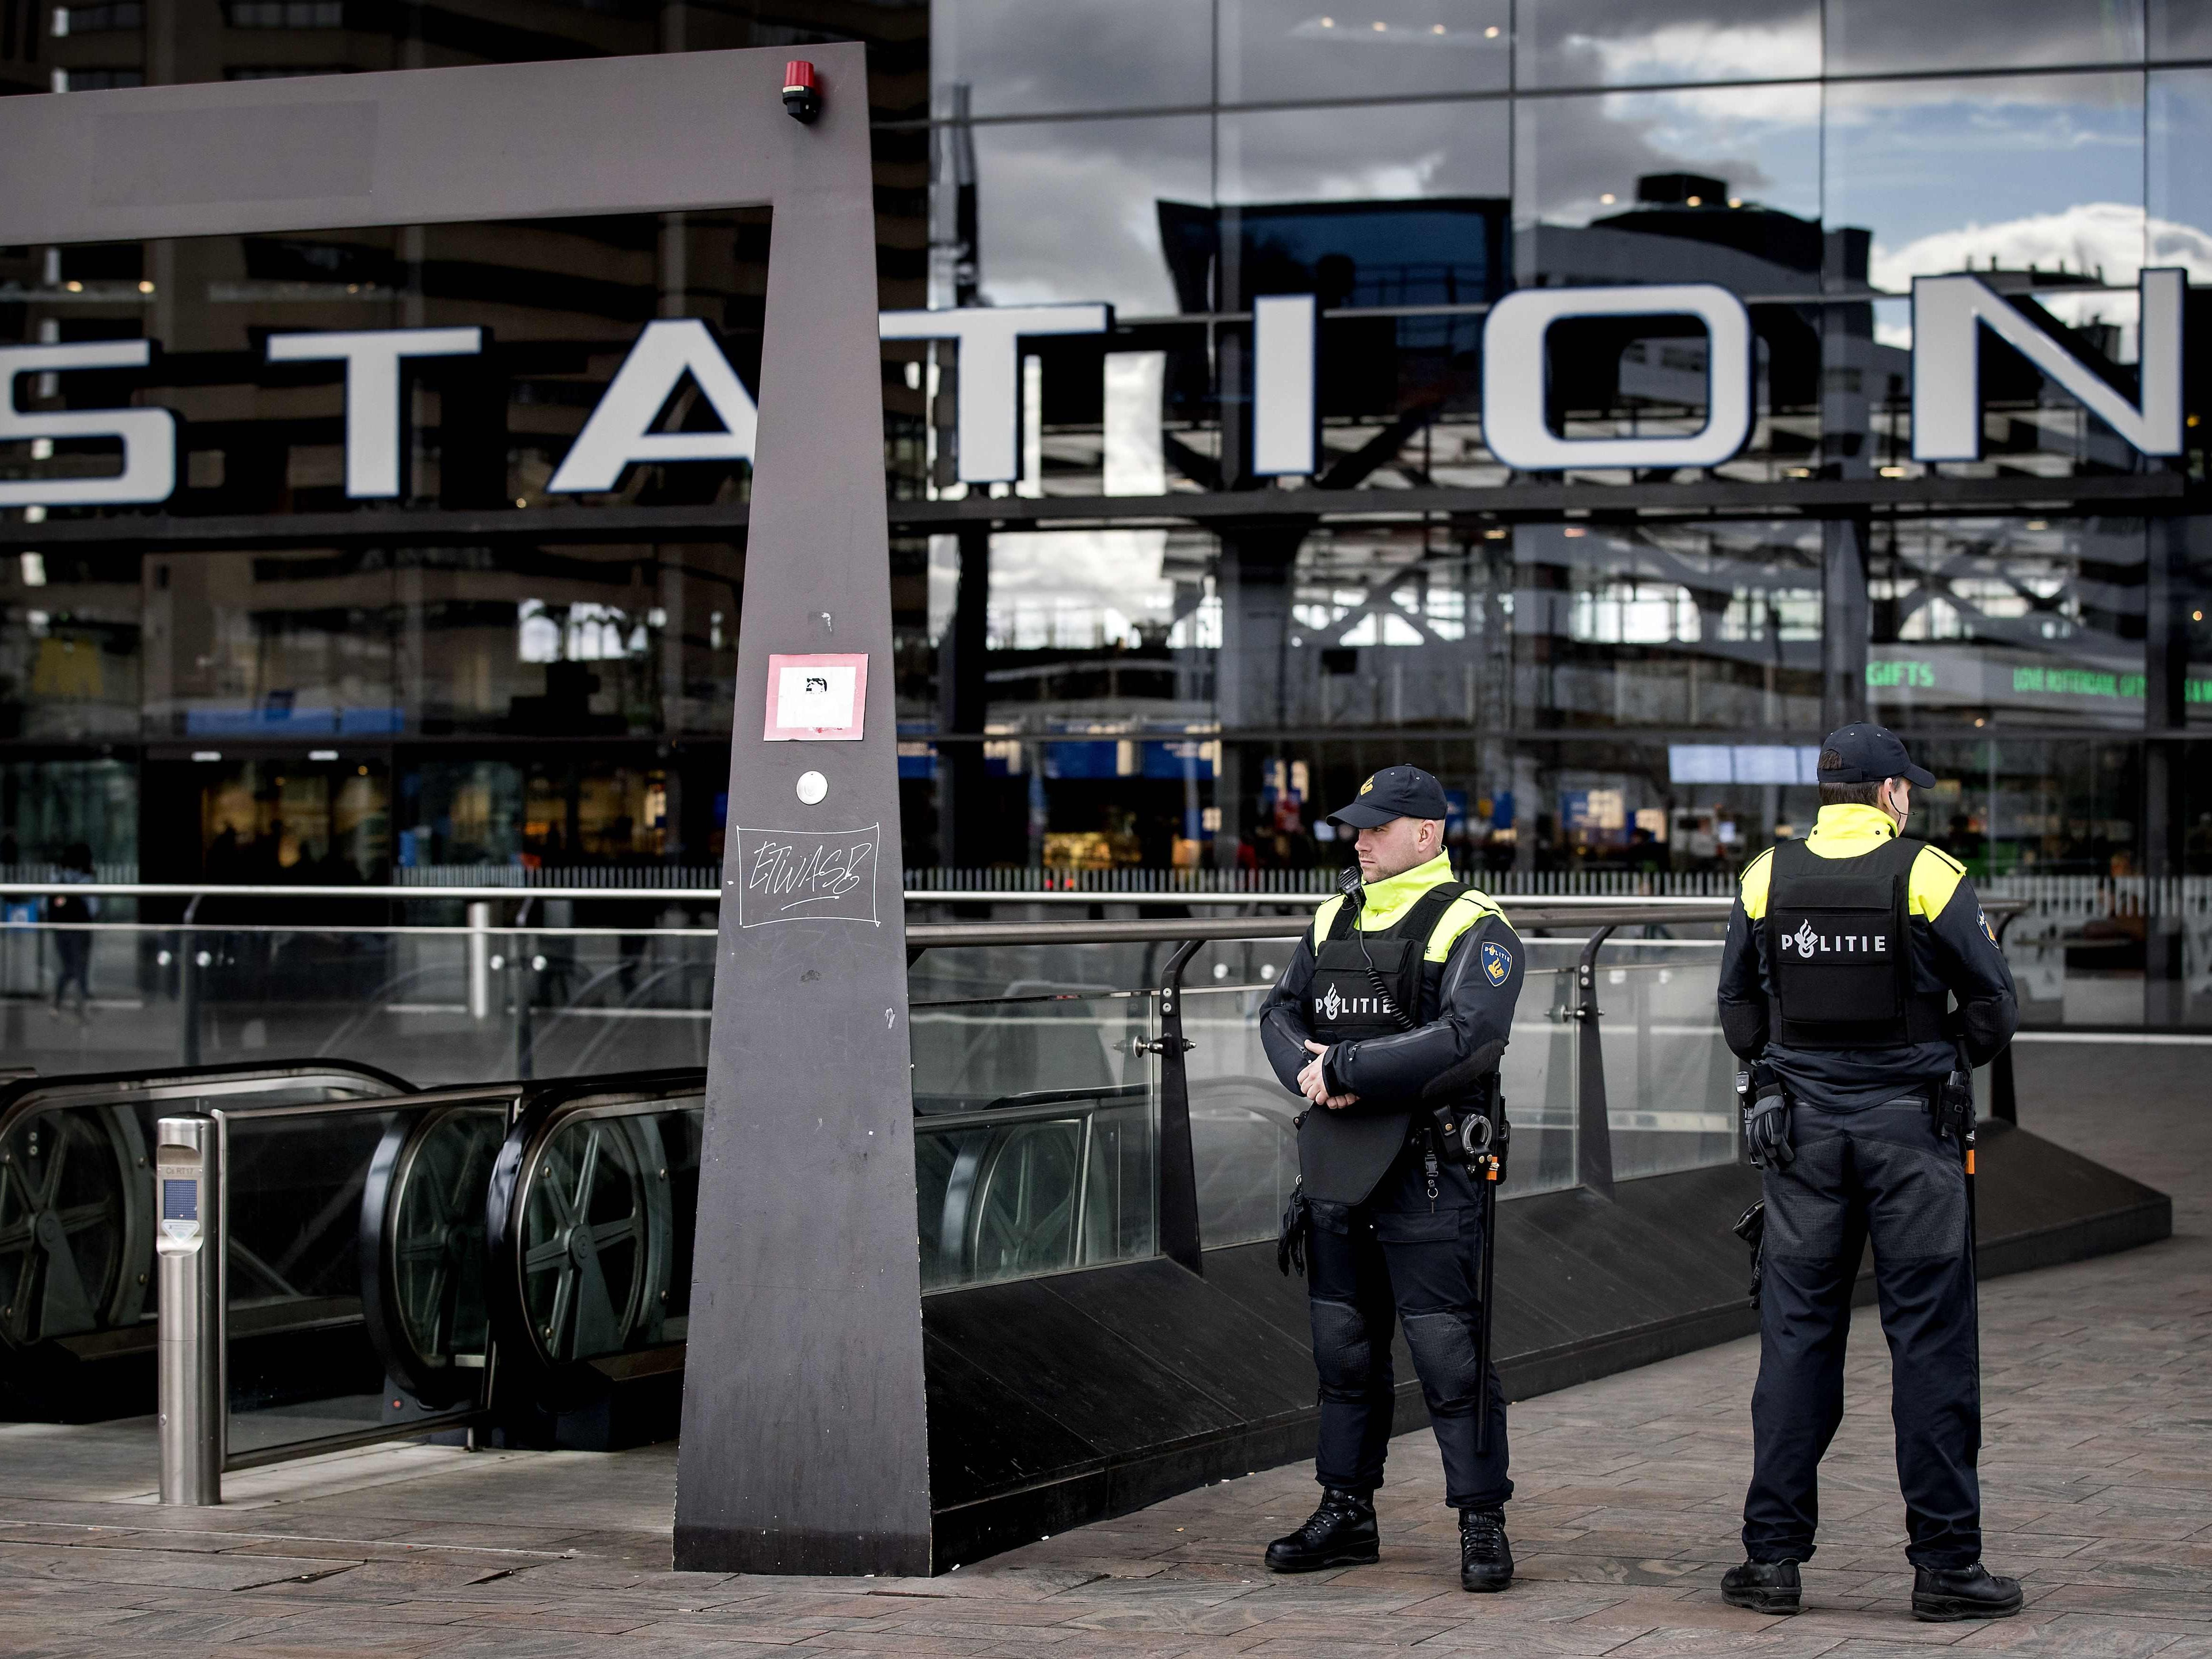 Officers keep surveillance at the entrance of a station in Rotterdam, after the attack in Utrecht.